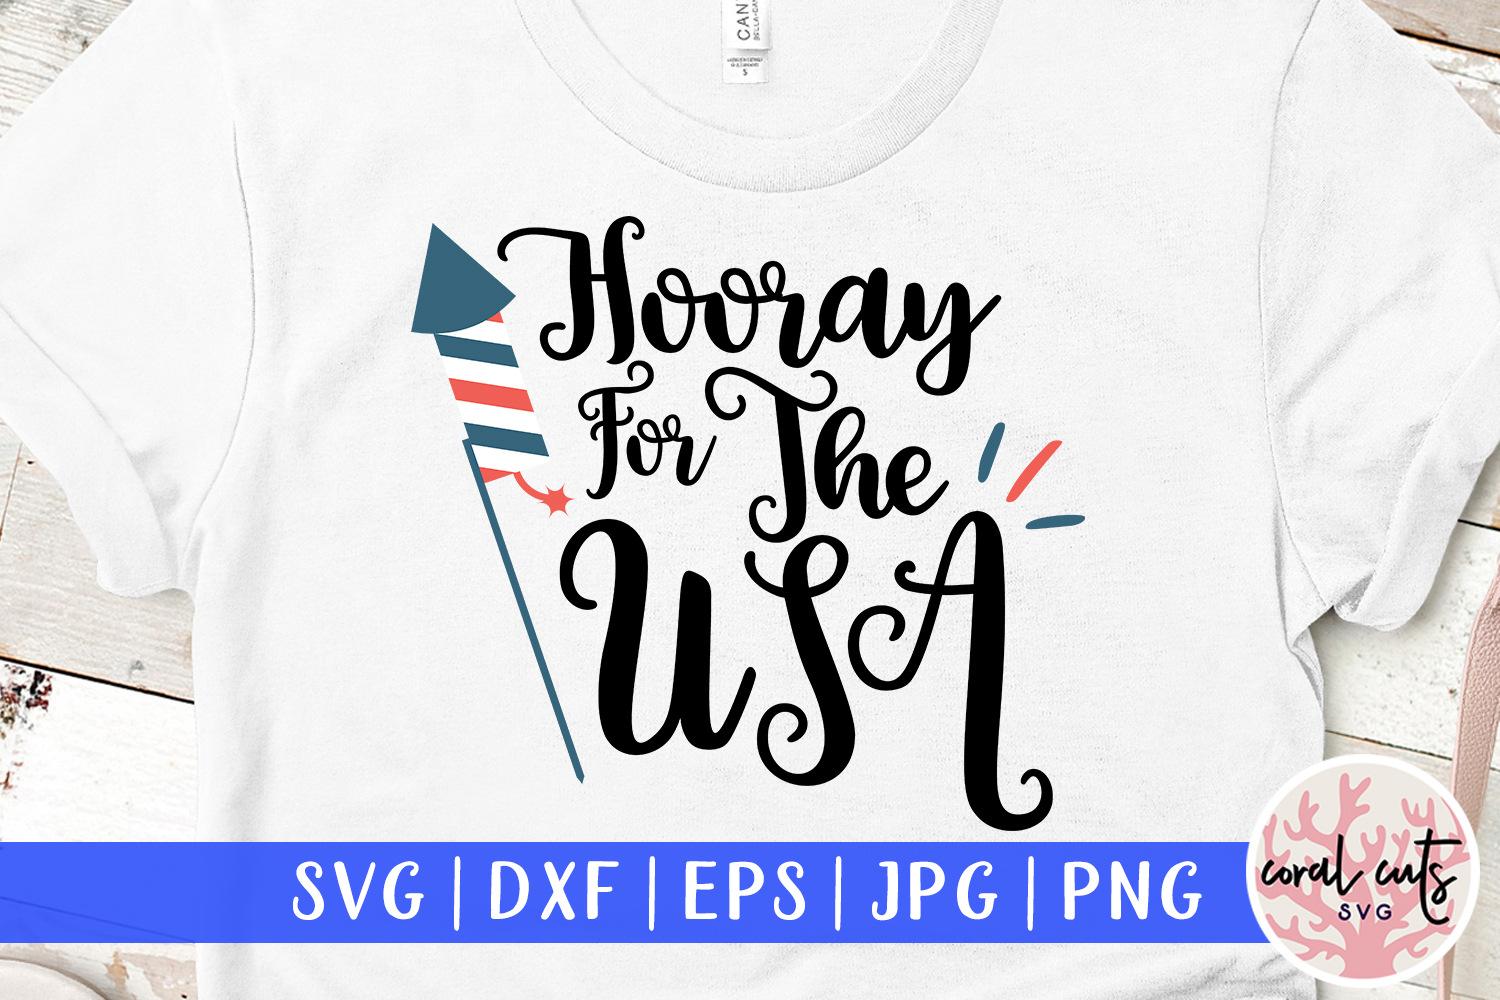 Download Free Hooray For The Usa Graphic By Coralcutssvg Creative Fabrica for Cricut Explore, Silhouette and other cutting machines.